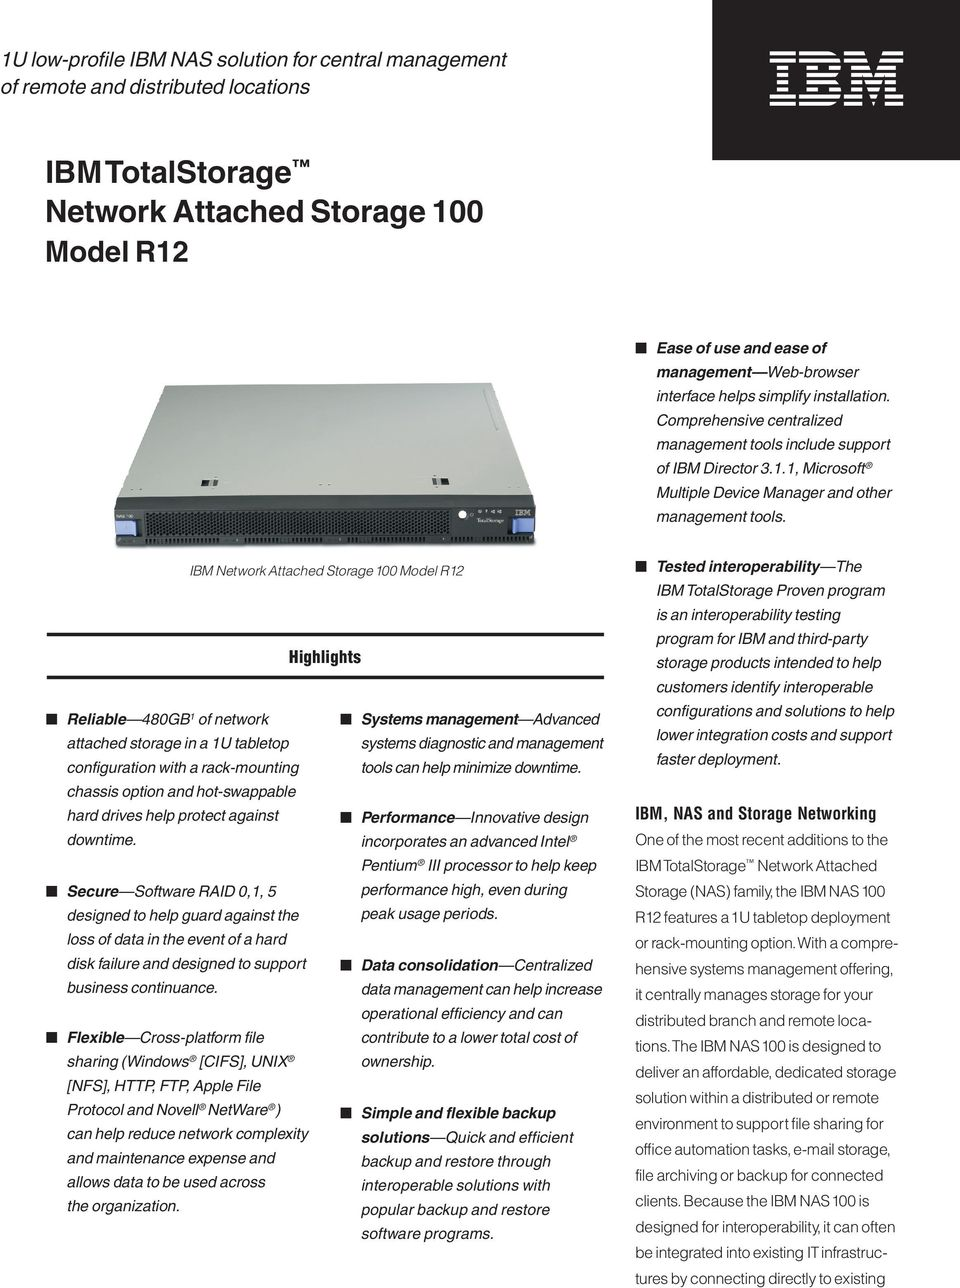 IBM Network Attached Storage 100 Model R12 Highlights Reliable 480GB 1 of network Systems management Advanced attached storage in a 1U tabletop systems diagnostic and management configuration with a